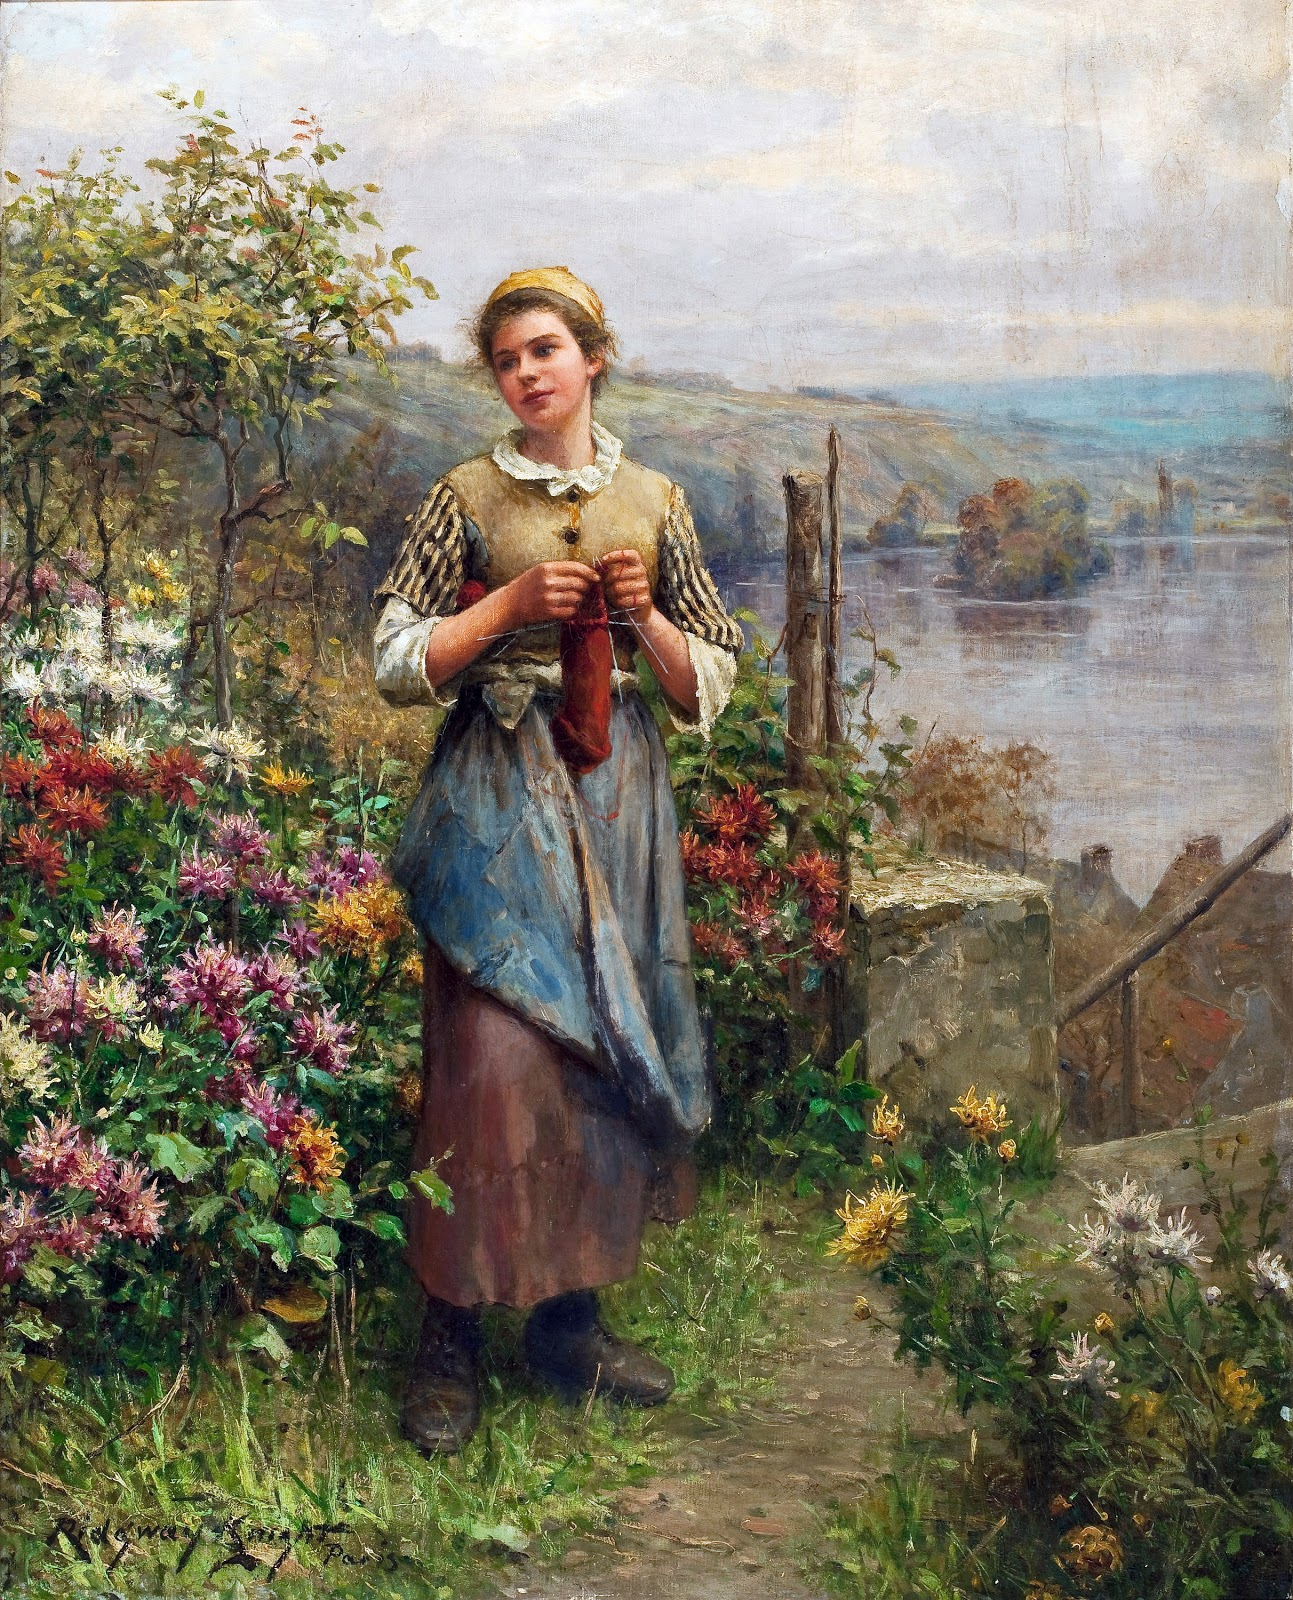 19th Century American Paintings: Daniel Ridgway Knight, Ctd